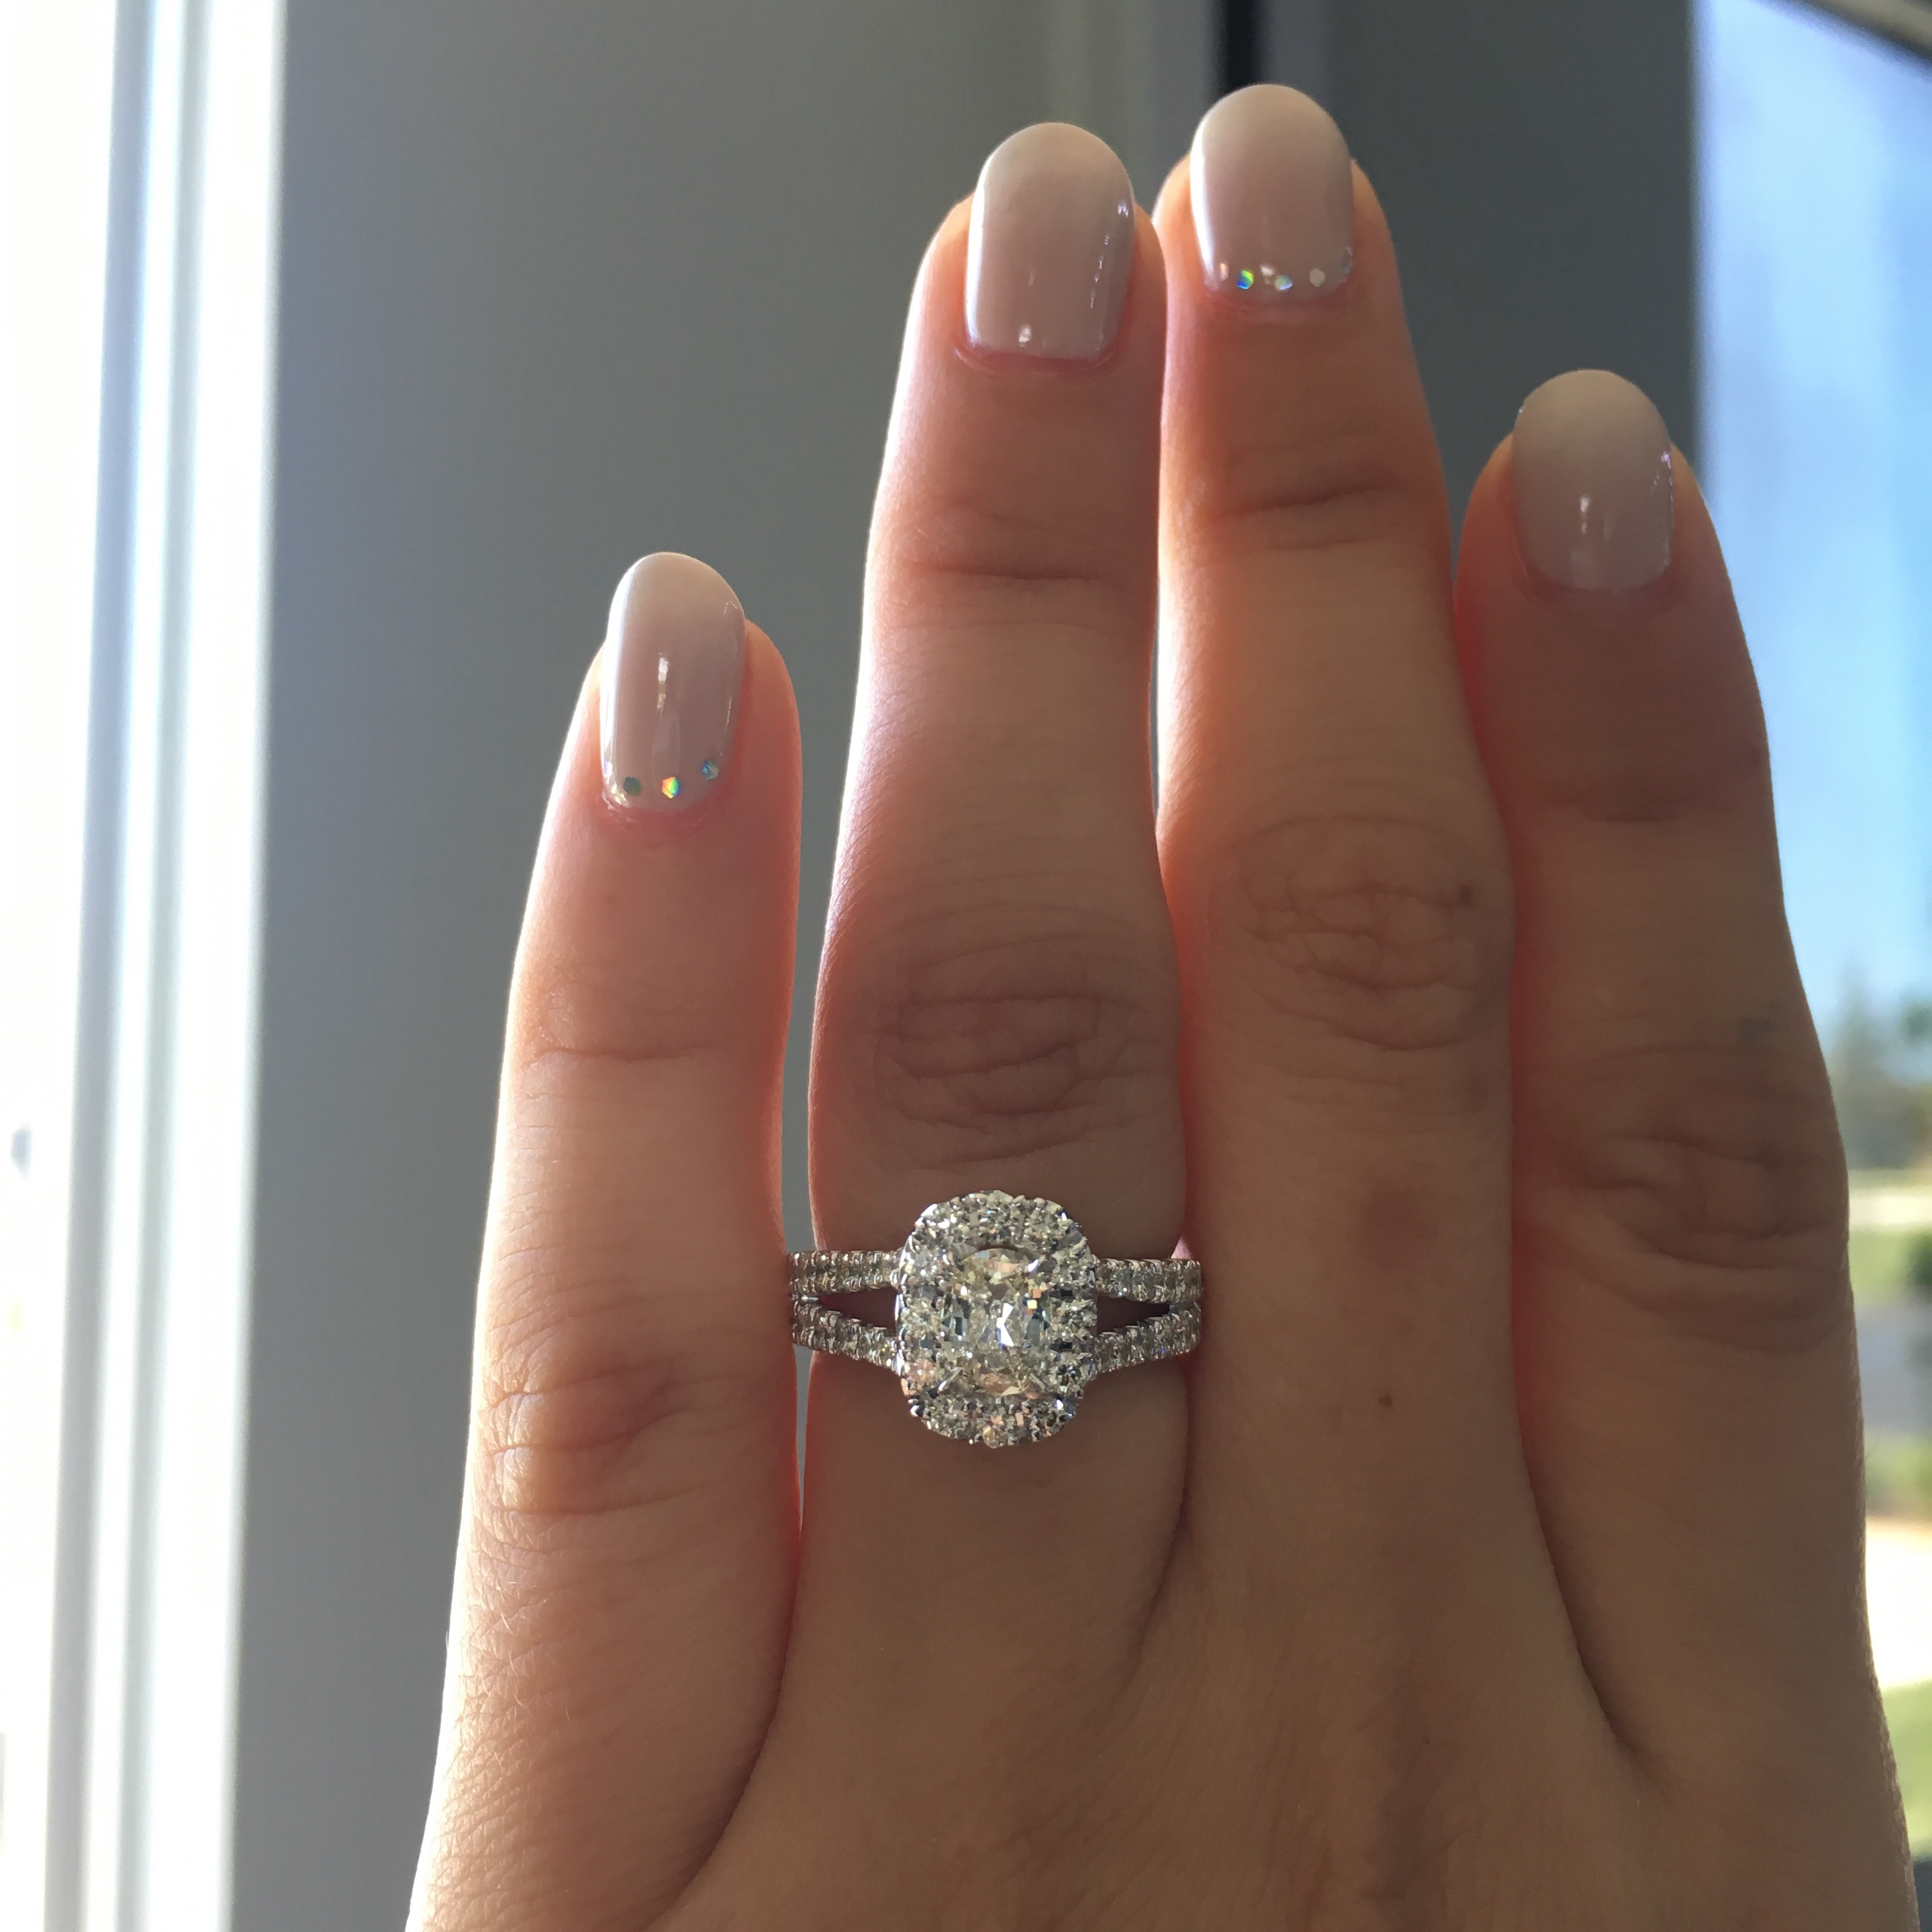 Henri Daussi Engagement Rings – What Makes Them Different?